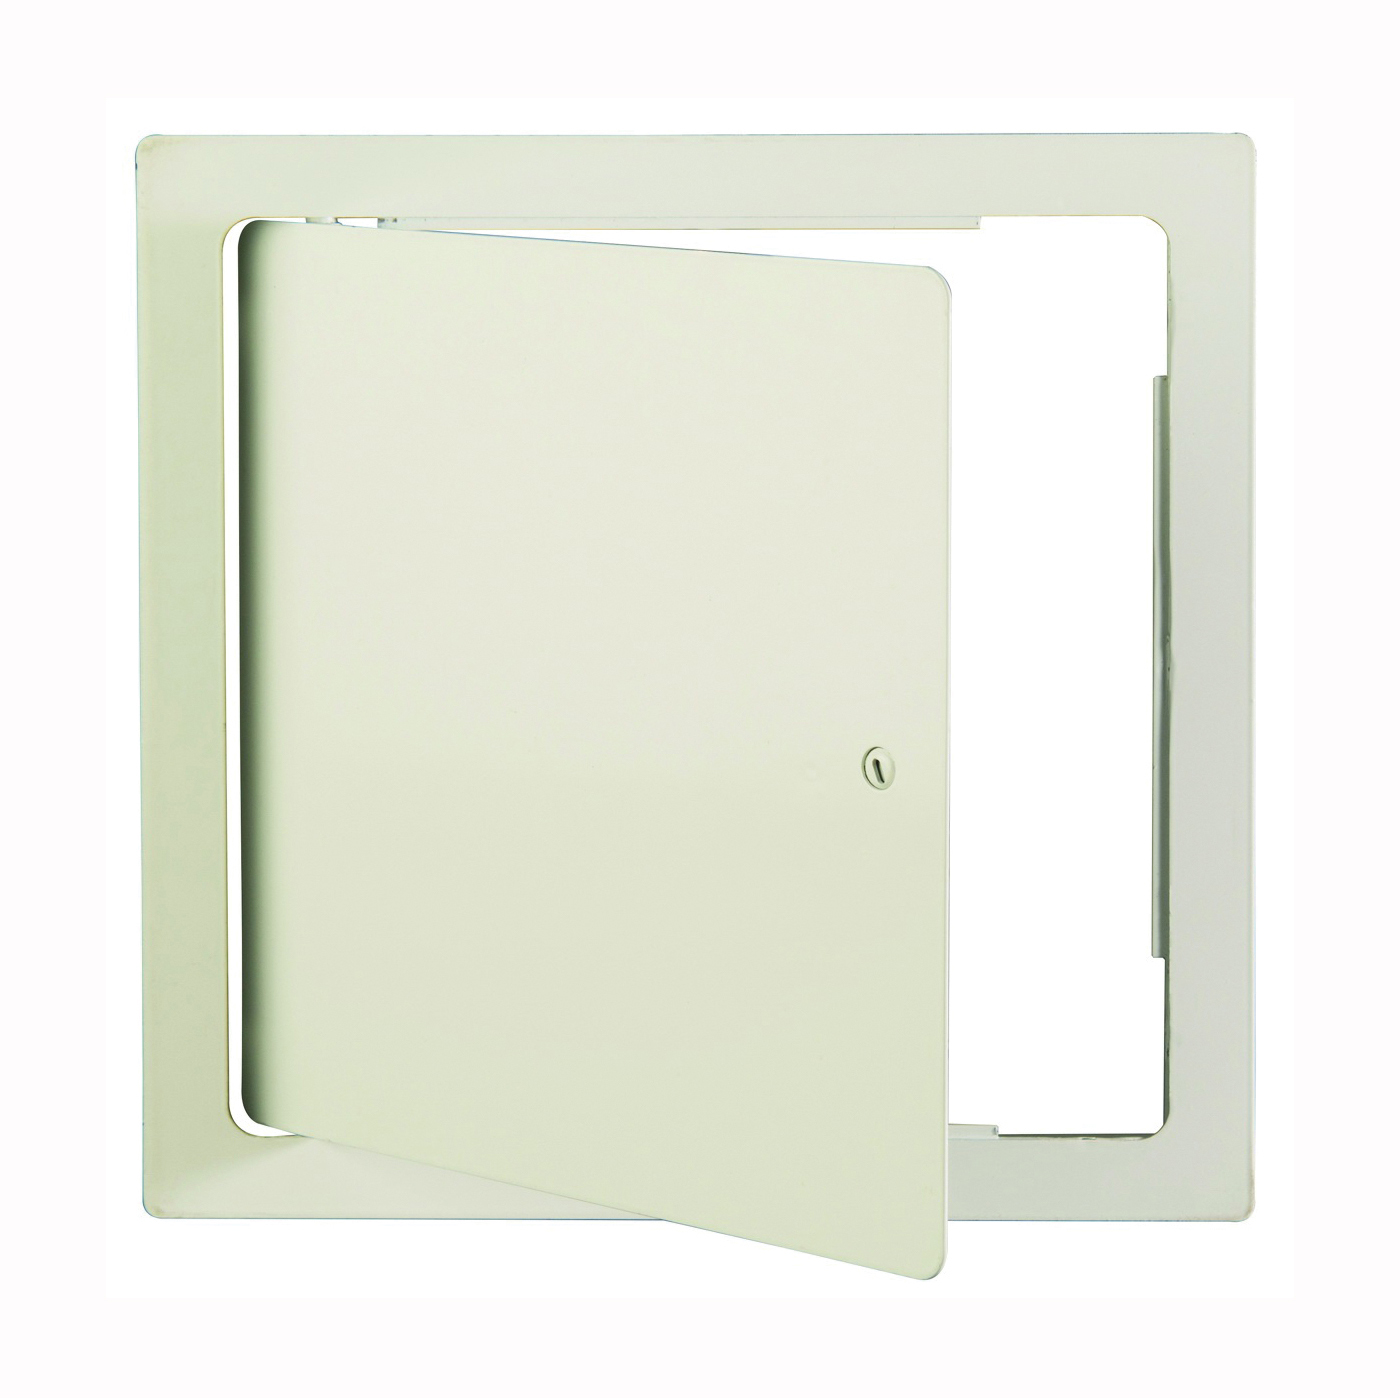 Picture of Karp DSC-214M Series MP1818S Access Door, 18 in W, Steel, Gray, Polished Satin